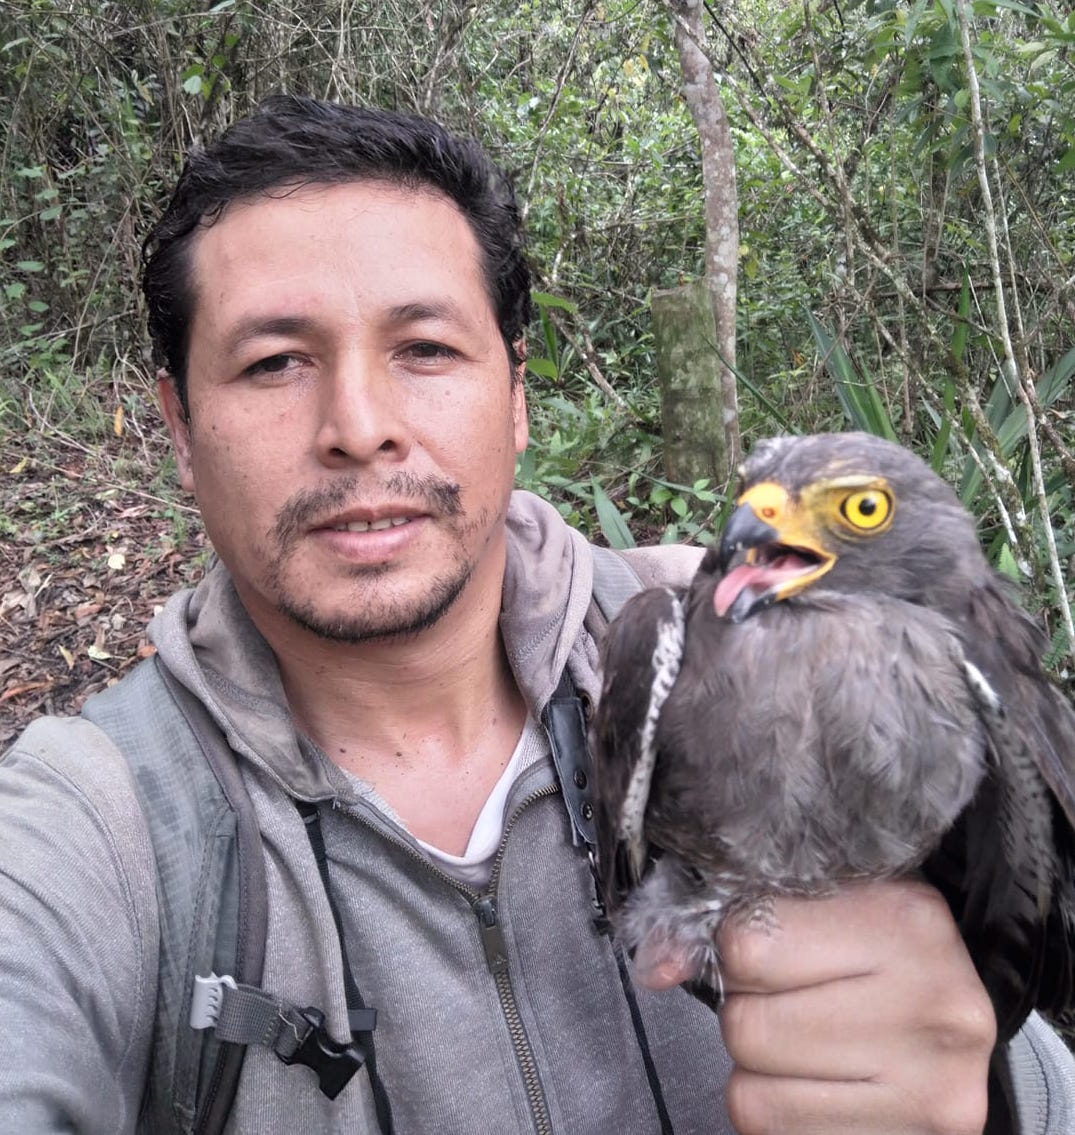 Luis Cueto holding a large raptor